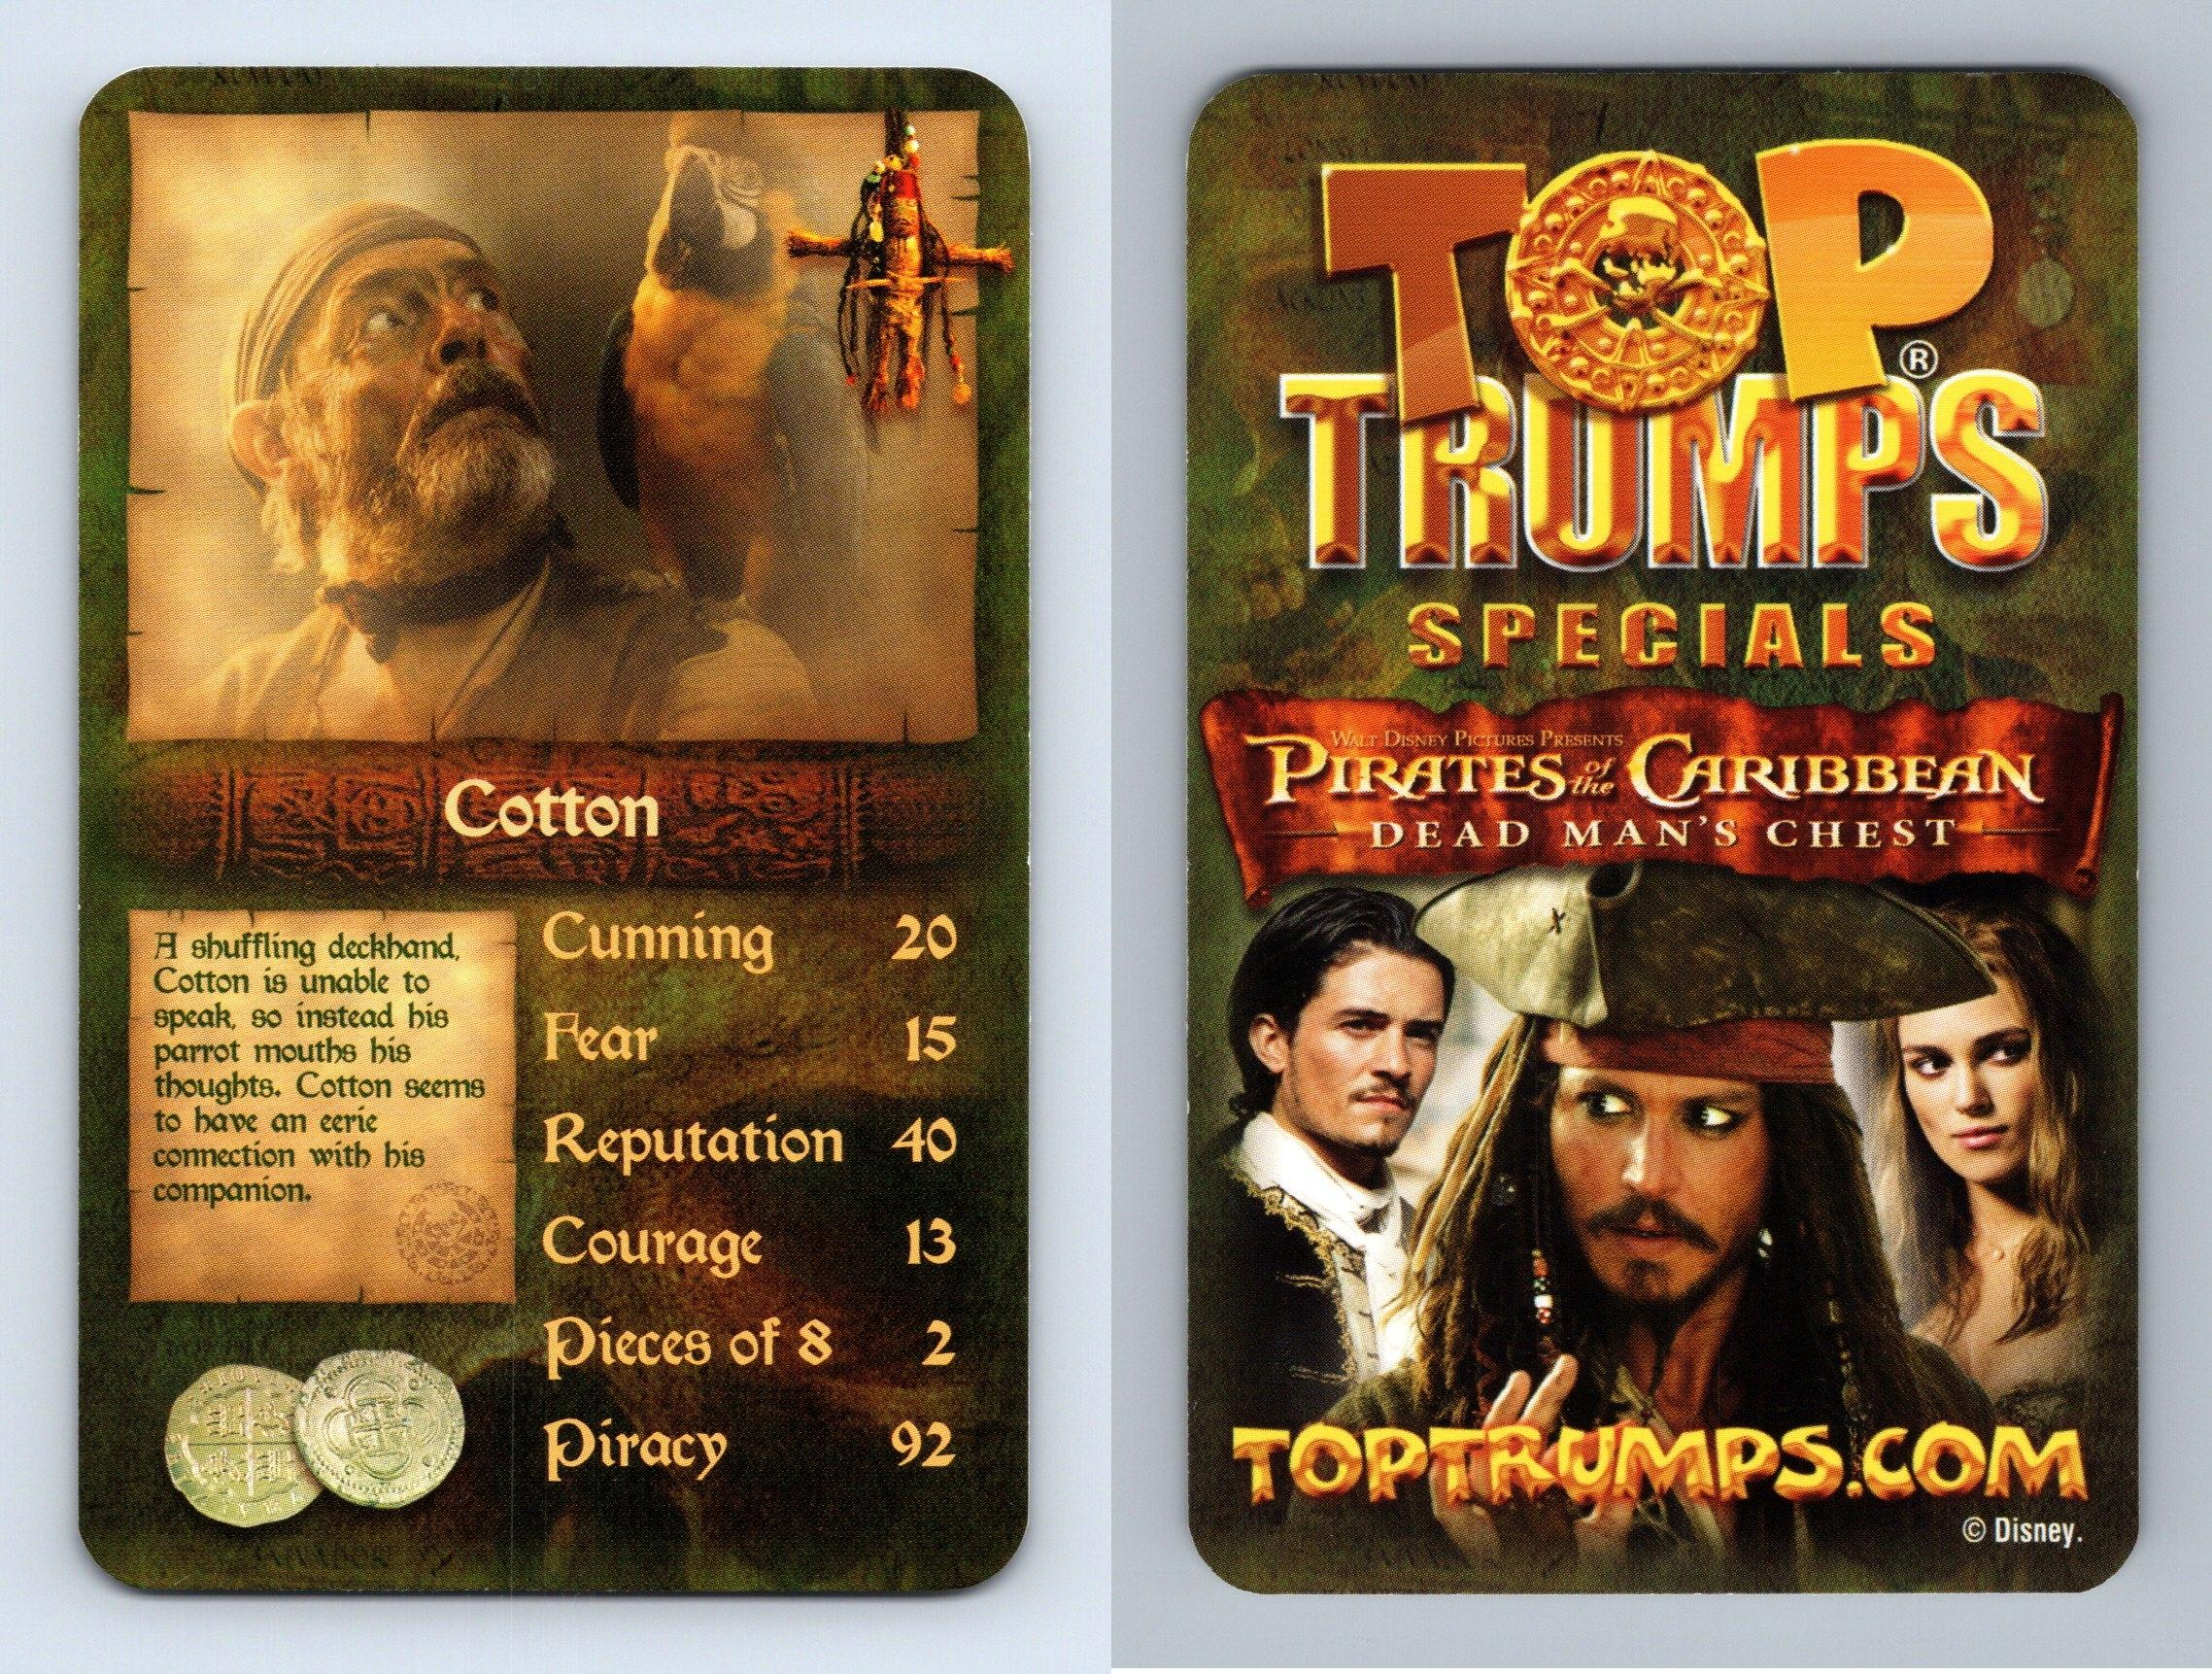 Cotton Pirates Of The Caribbean Dead Man S Chest 2006 Top Trumps Card